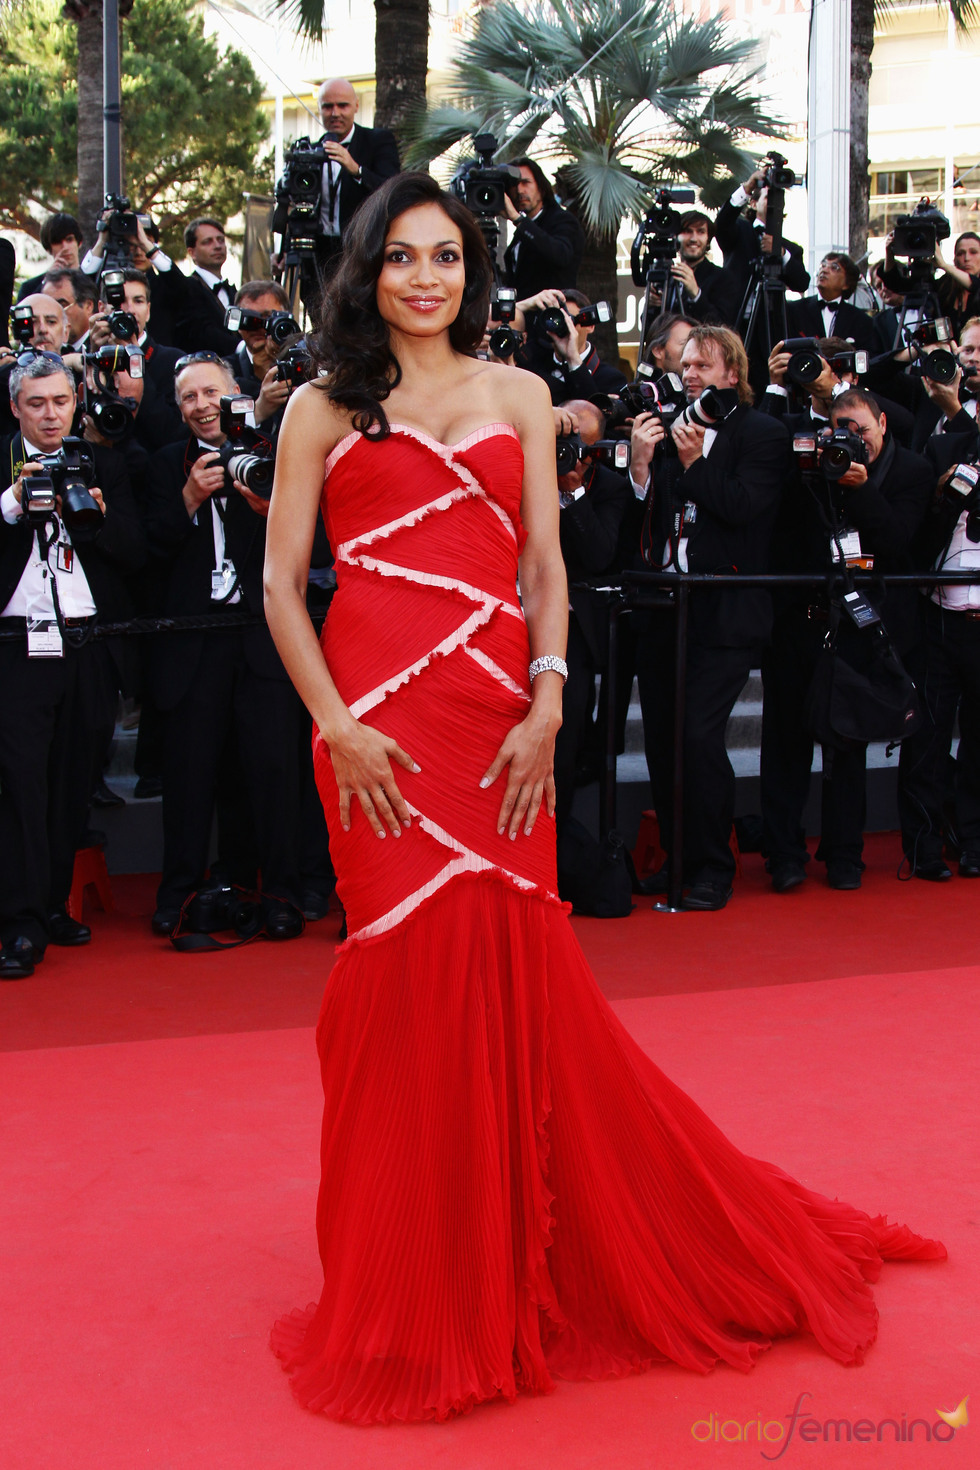 Rosario Dawson en la premier de 'This Must Be The Place' en Cannes 2011